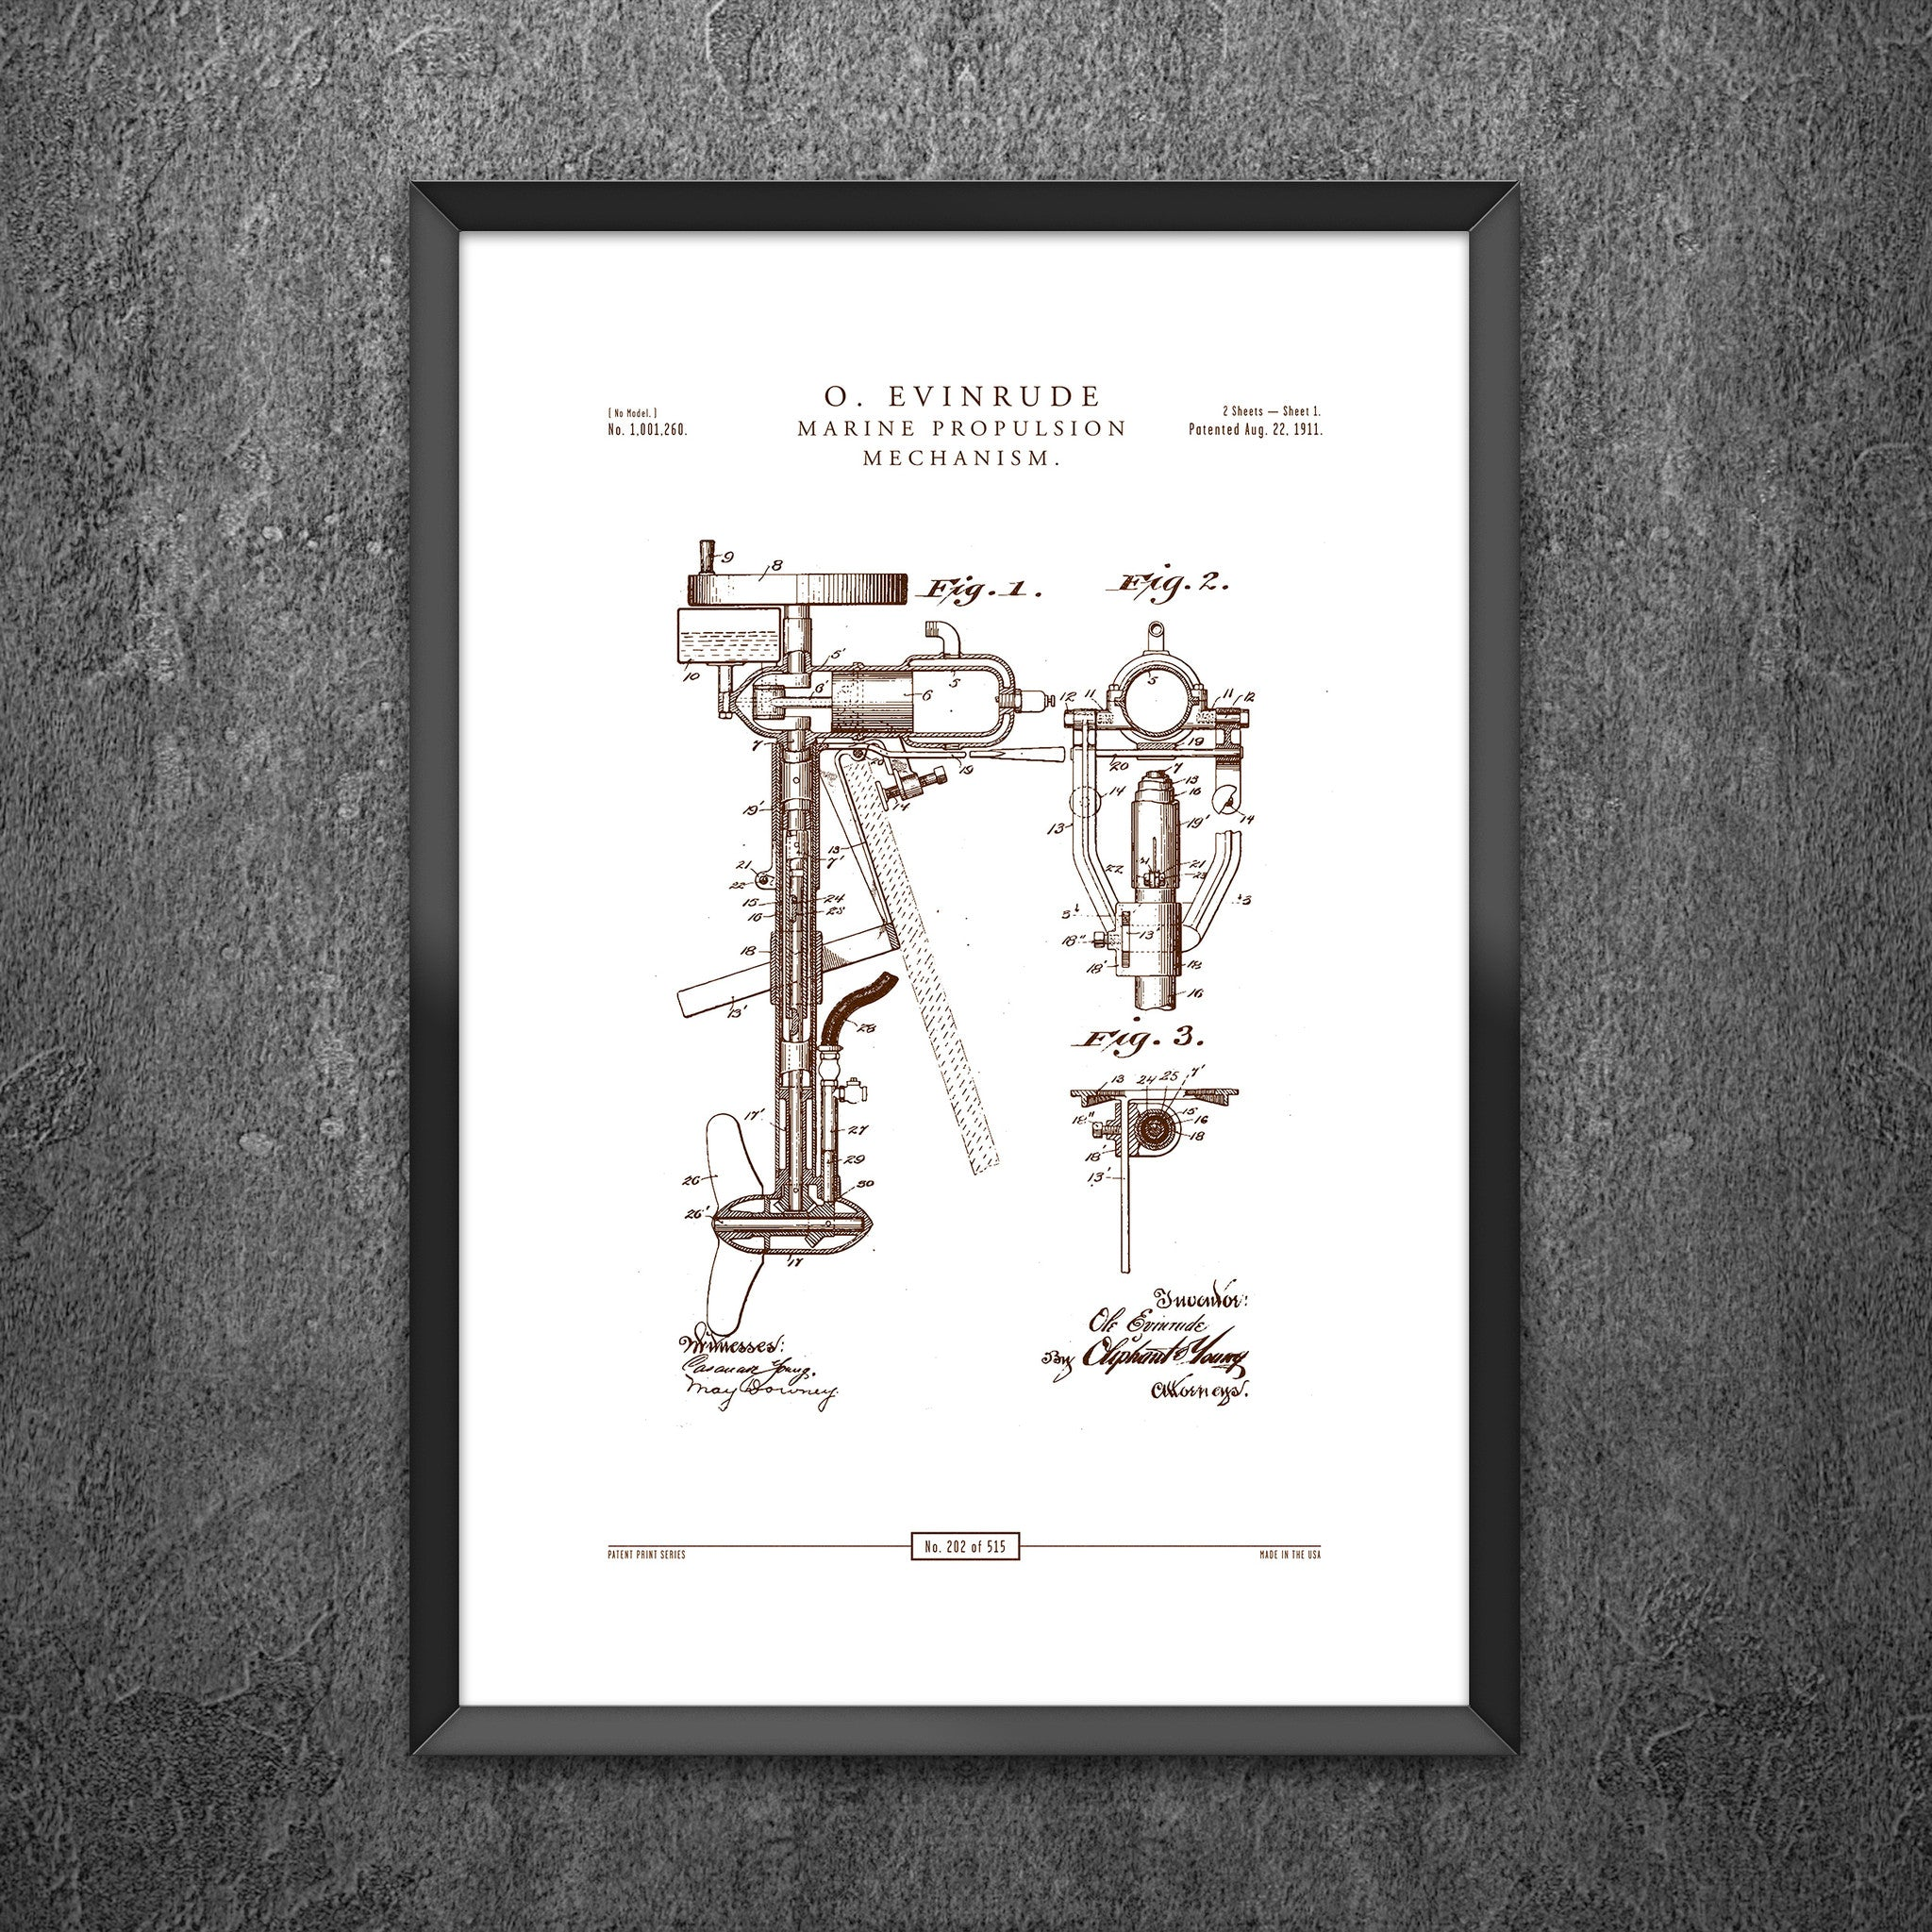 No 202 - Marine Propulsion Mechanism